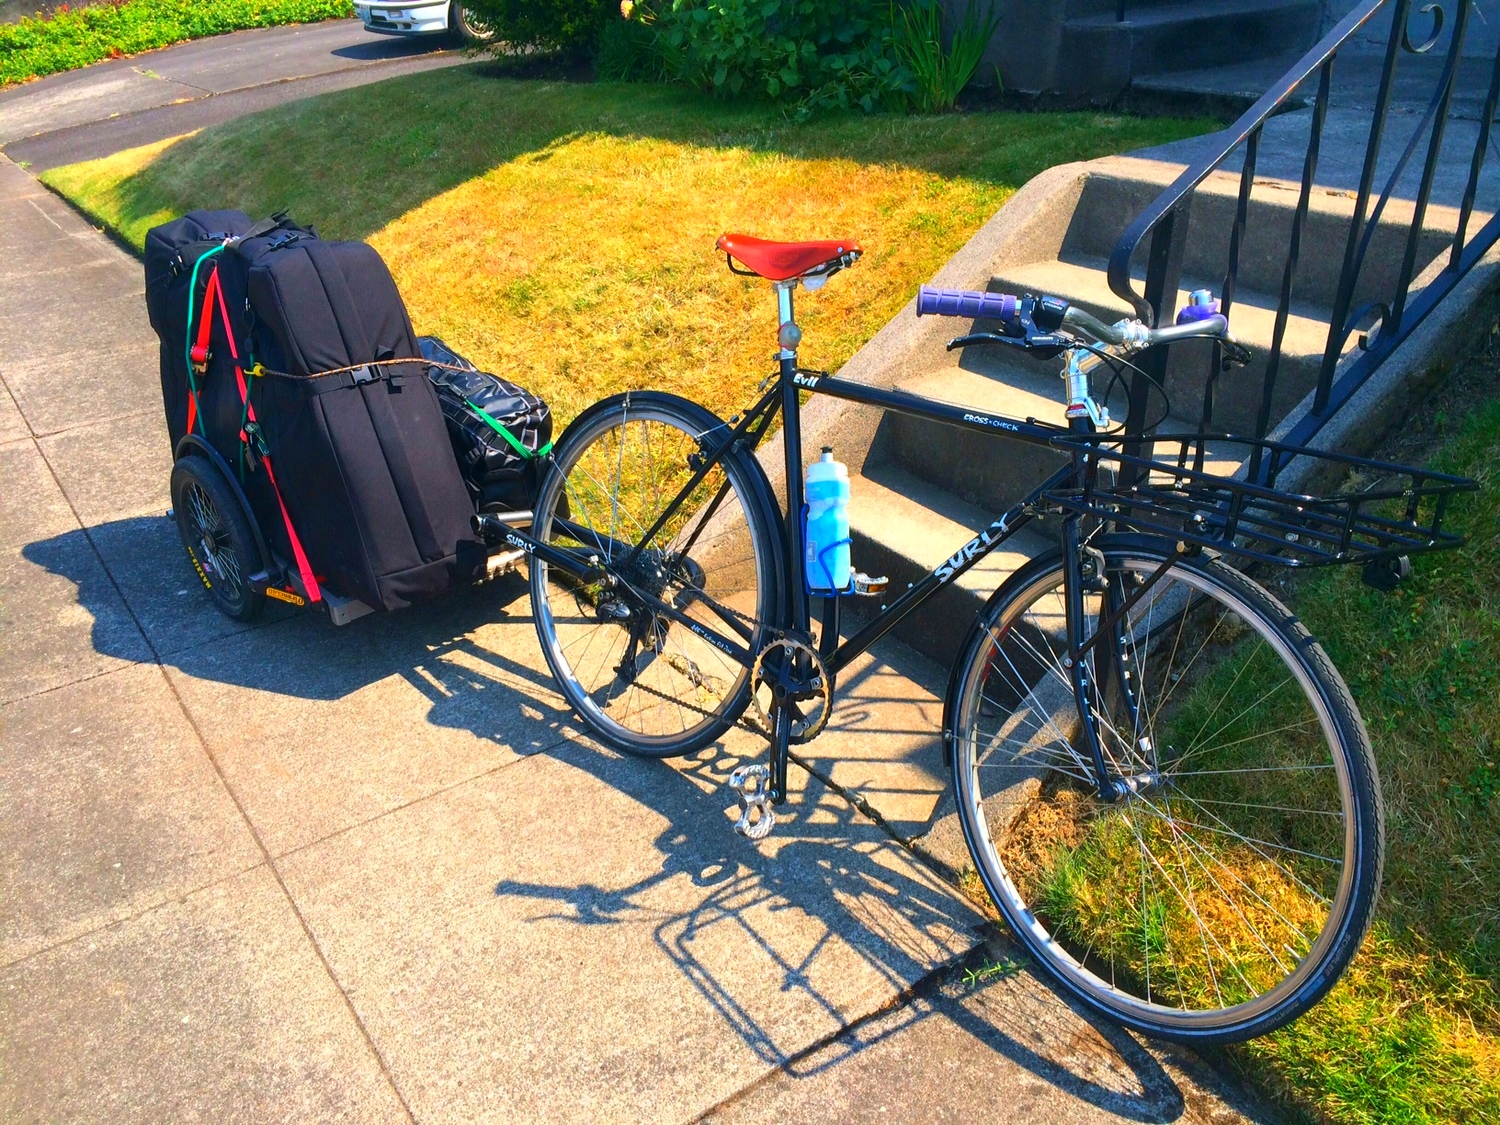 Popsicle and trailer ready to rock all the way to the PDX airport, race bike in tow.